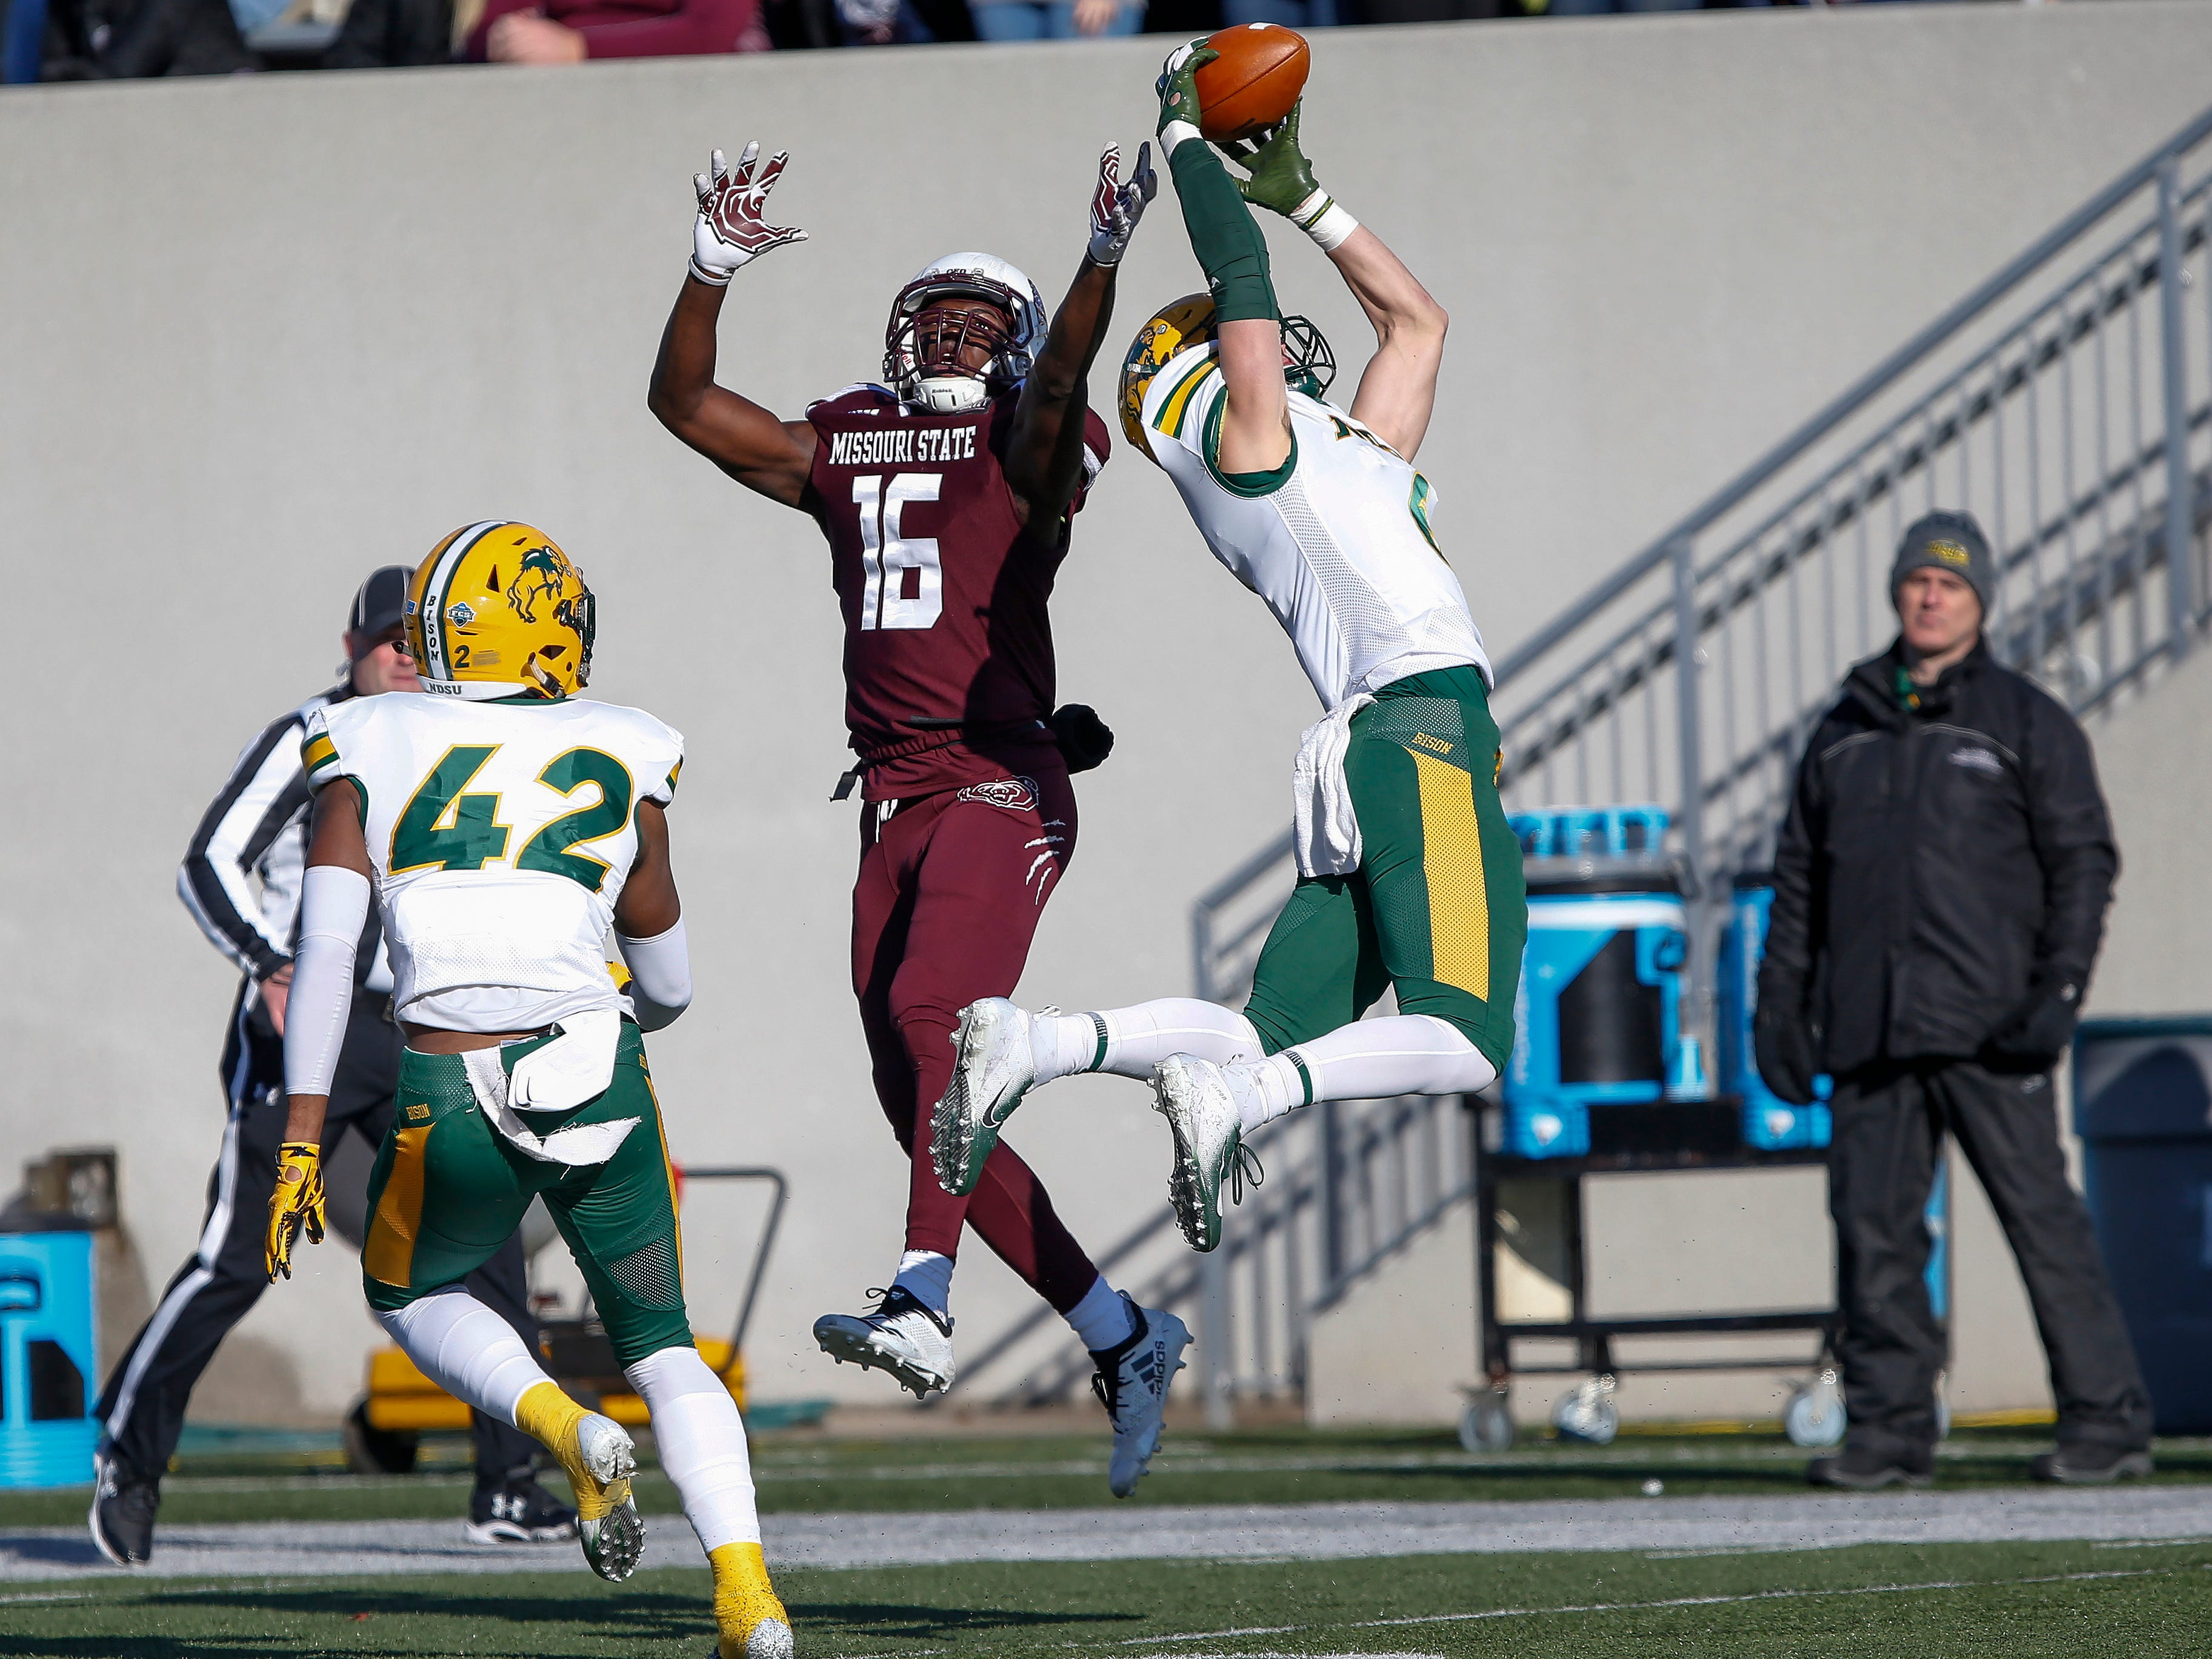 North Dakota State's James Hendricks intercepts a pass intended for Damoriea Vick during the Bison's game against Missouri State University at Plaster Stadium on Saturday, Nov. 10, 2018.